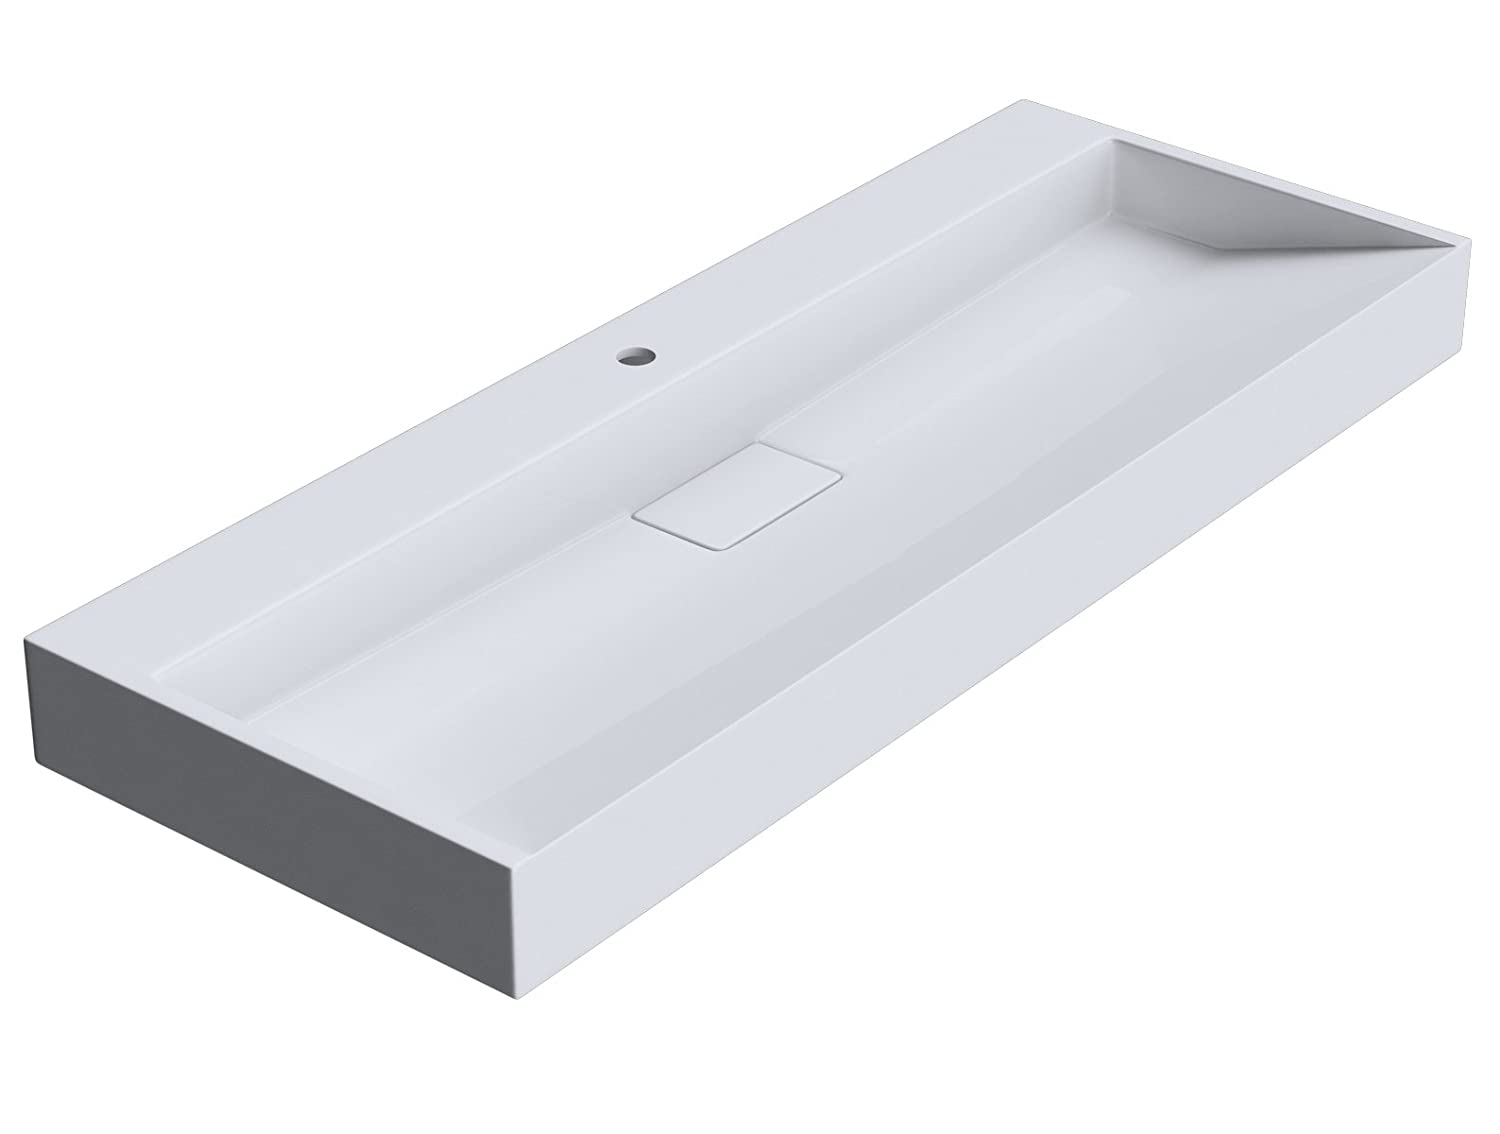 One Tap Hole 1200 x 460mm (WxD) Durovin Bathrooms Luxurious Cast Stone Resin Wash Basin   Wall Hung Or Counter Top Mount Sink No Tap Hole   Concealed Waste   900 x 460mm (WXD)